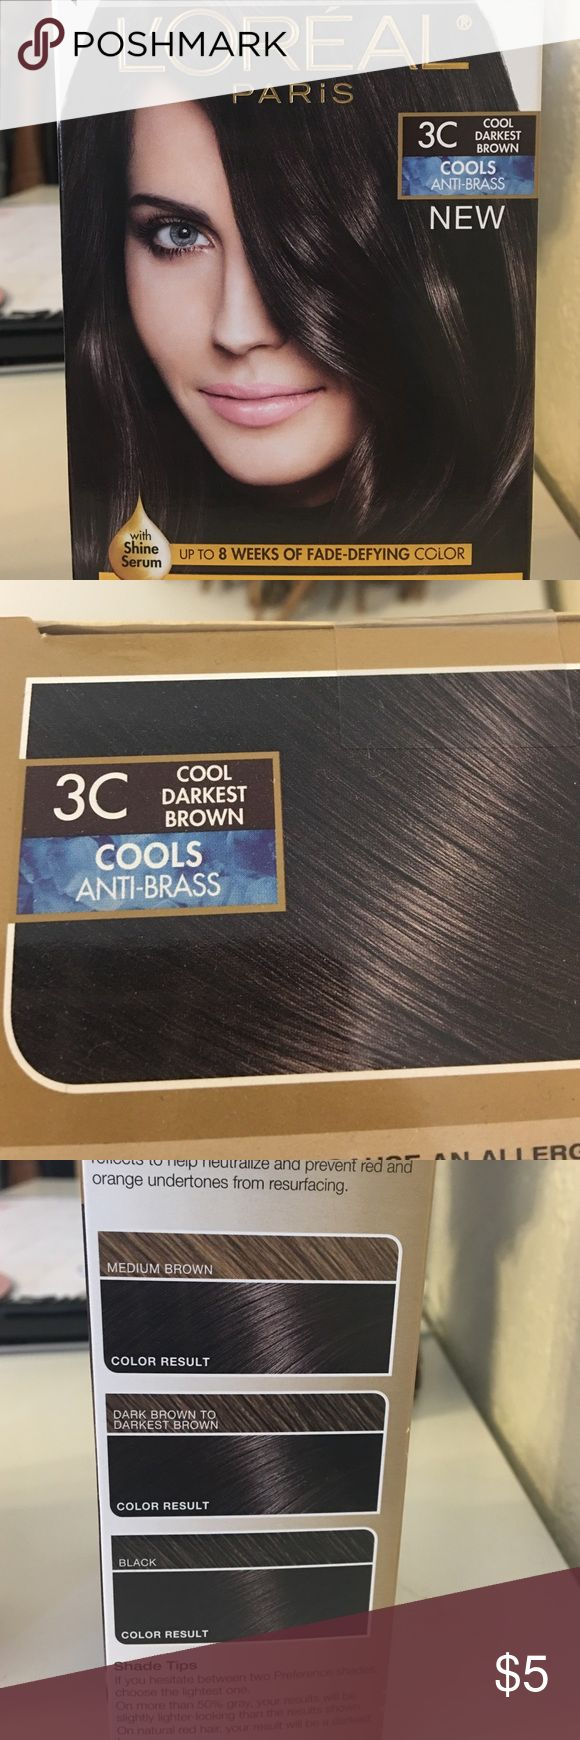 L'Oréal Paris 3C Cool Darkest Brown Cook Darkest Brown Haircolor loreal  Other